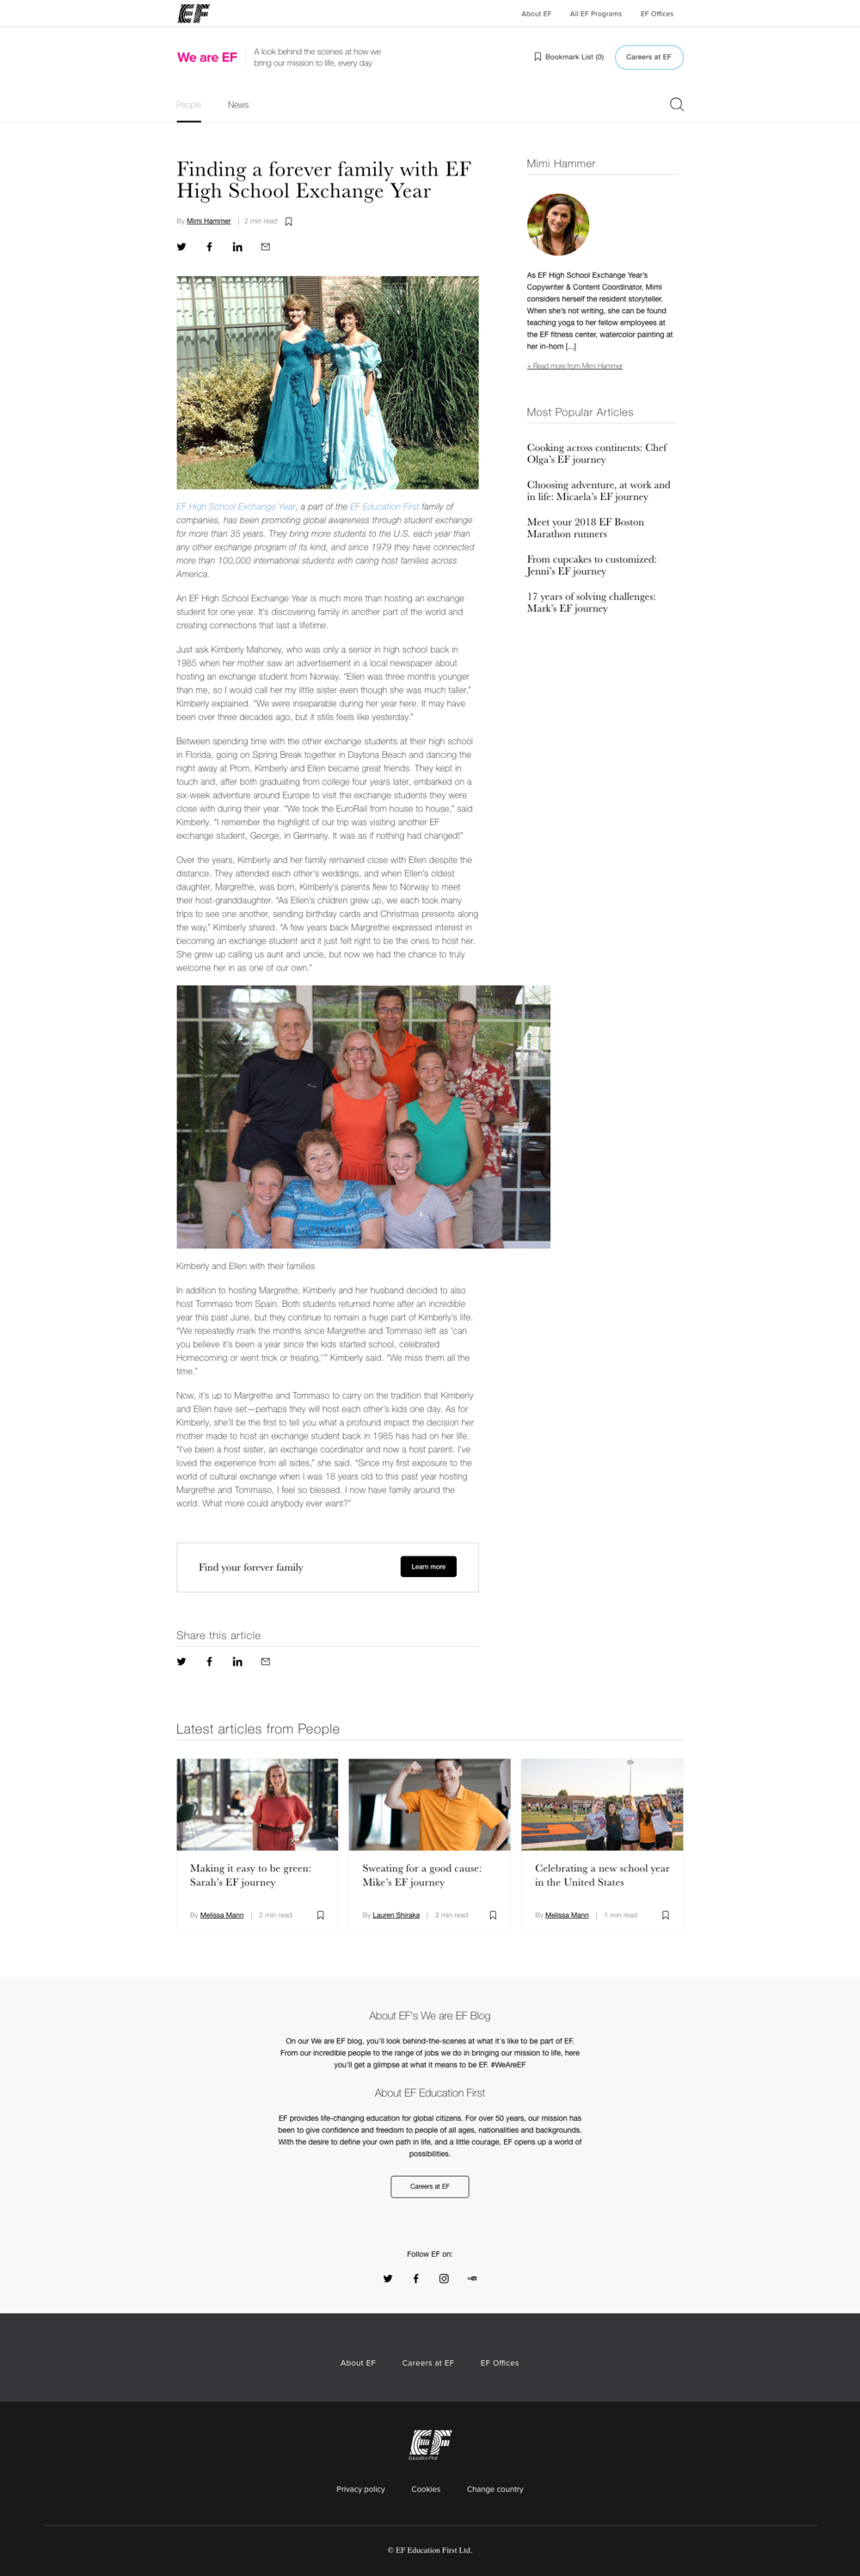 screencapture-ef-blog-we-are-ef-finding-forever-family-with-ef-high-school-exchange-year-2018-09-20-17_39_33.png